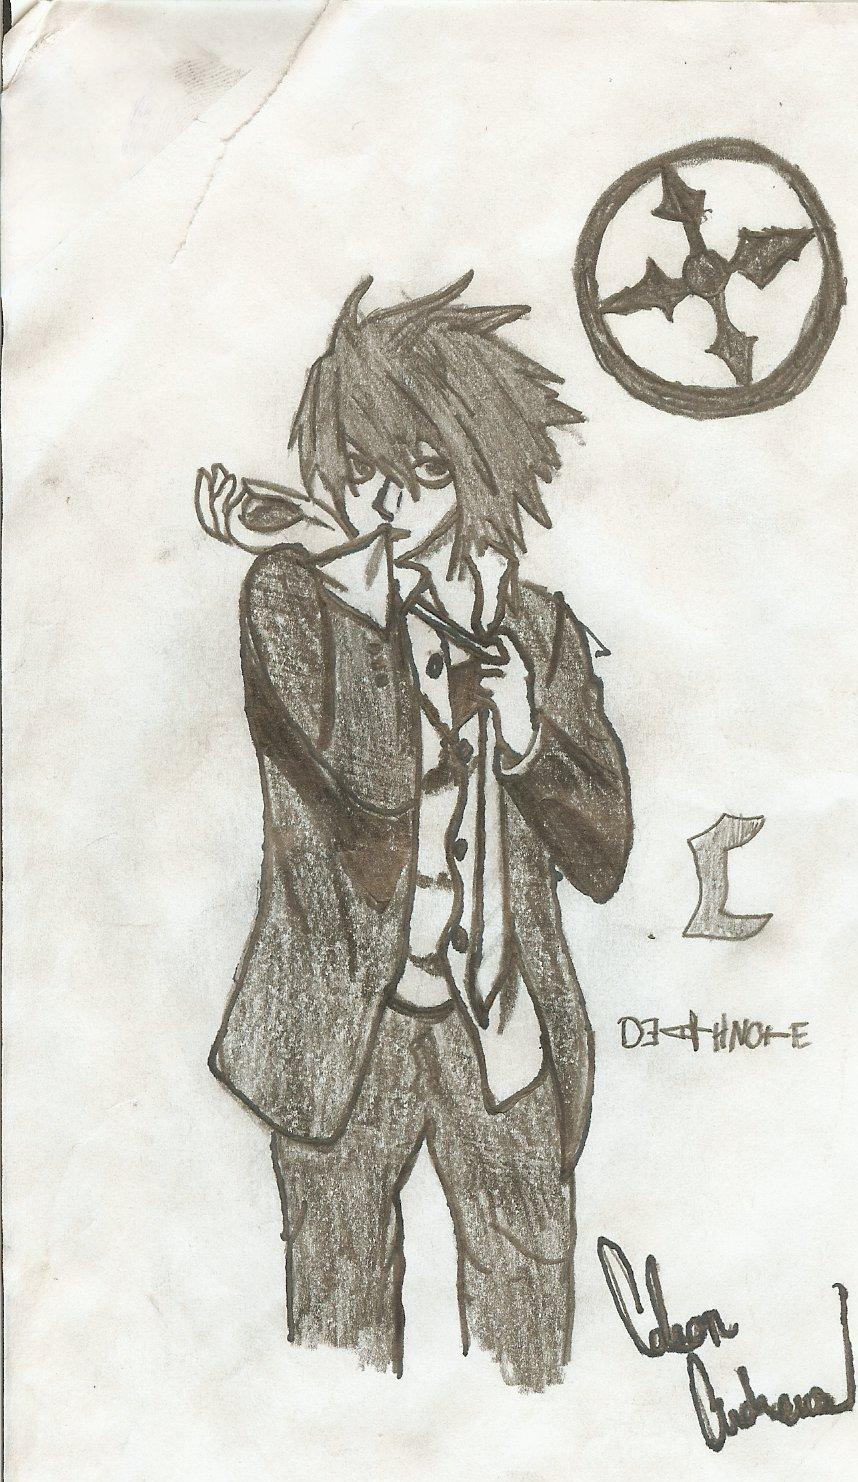 Another - L - death note